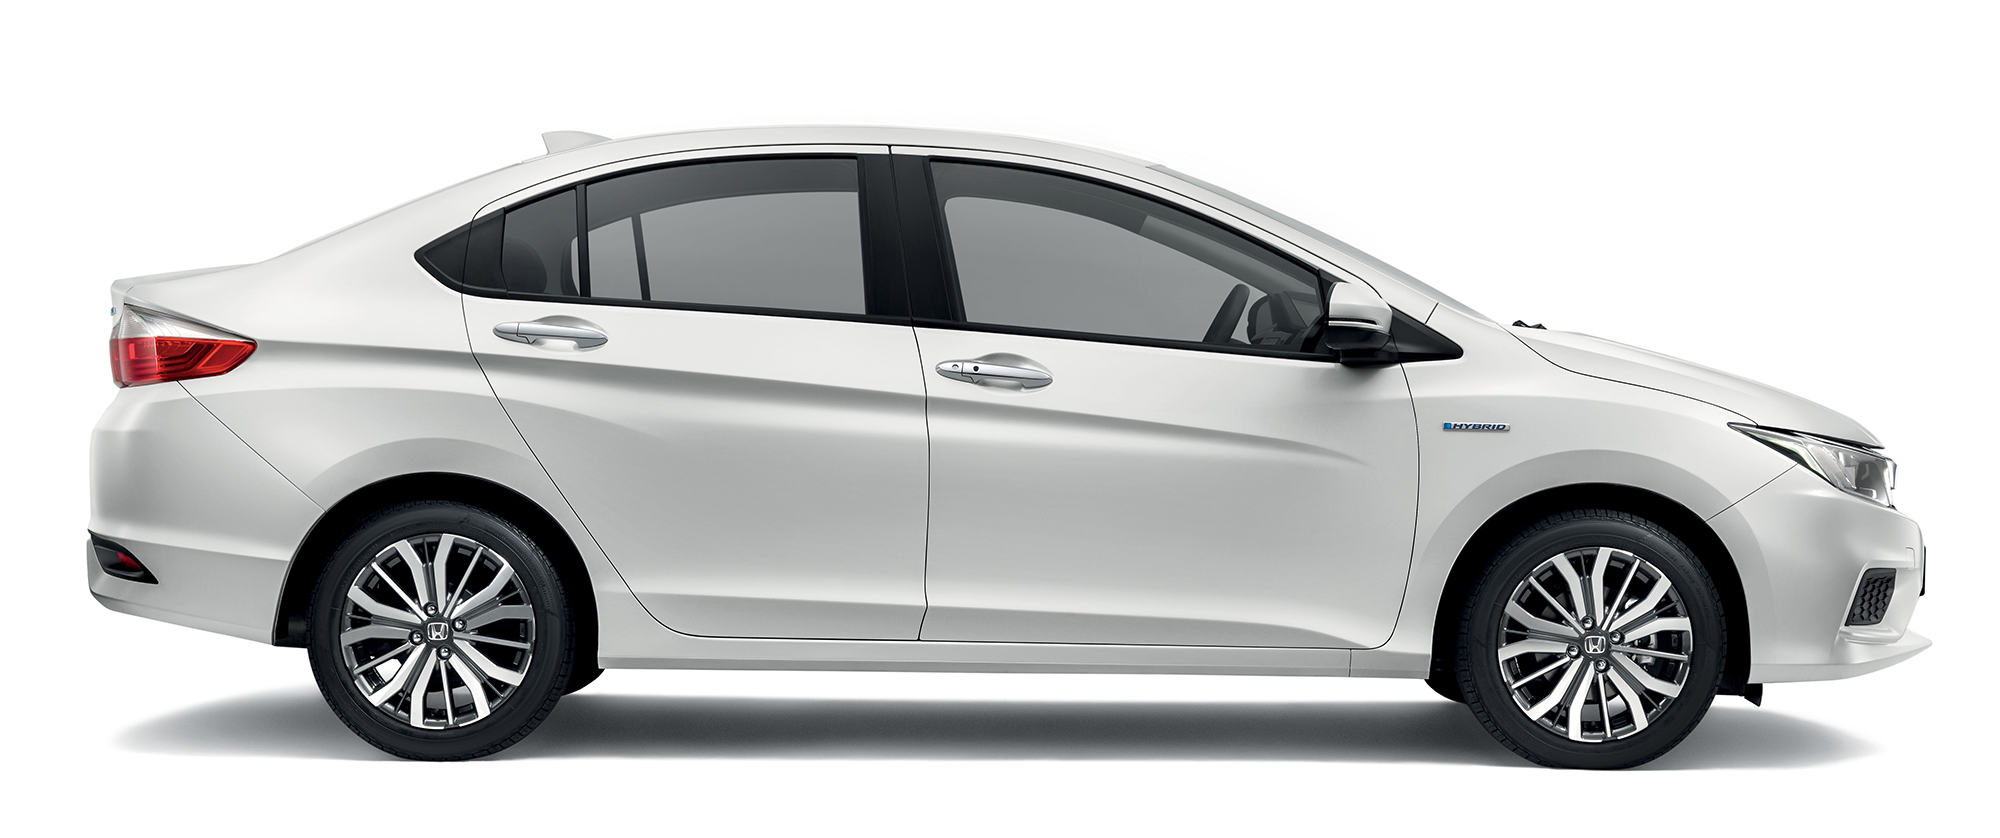 Honda City Hybrid Launched in Malaysia with 25.64 Km per Liter Mileage 1